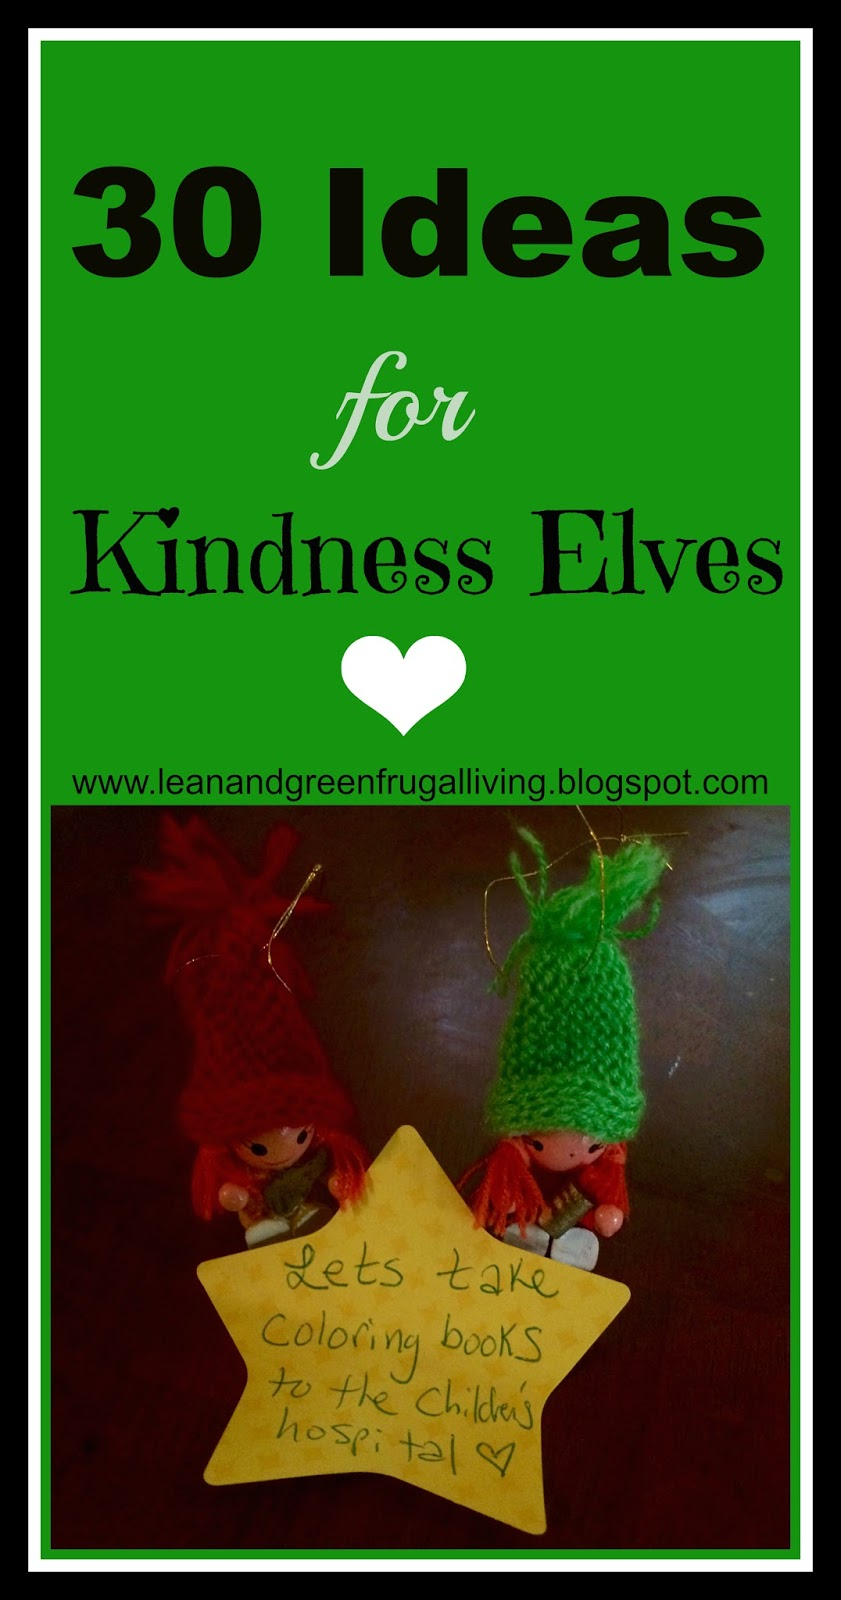 Why We Choose to Do Kindness Elves and 30 Ideas for Holiday Kindness